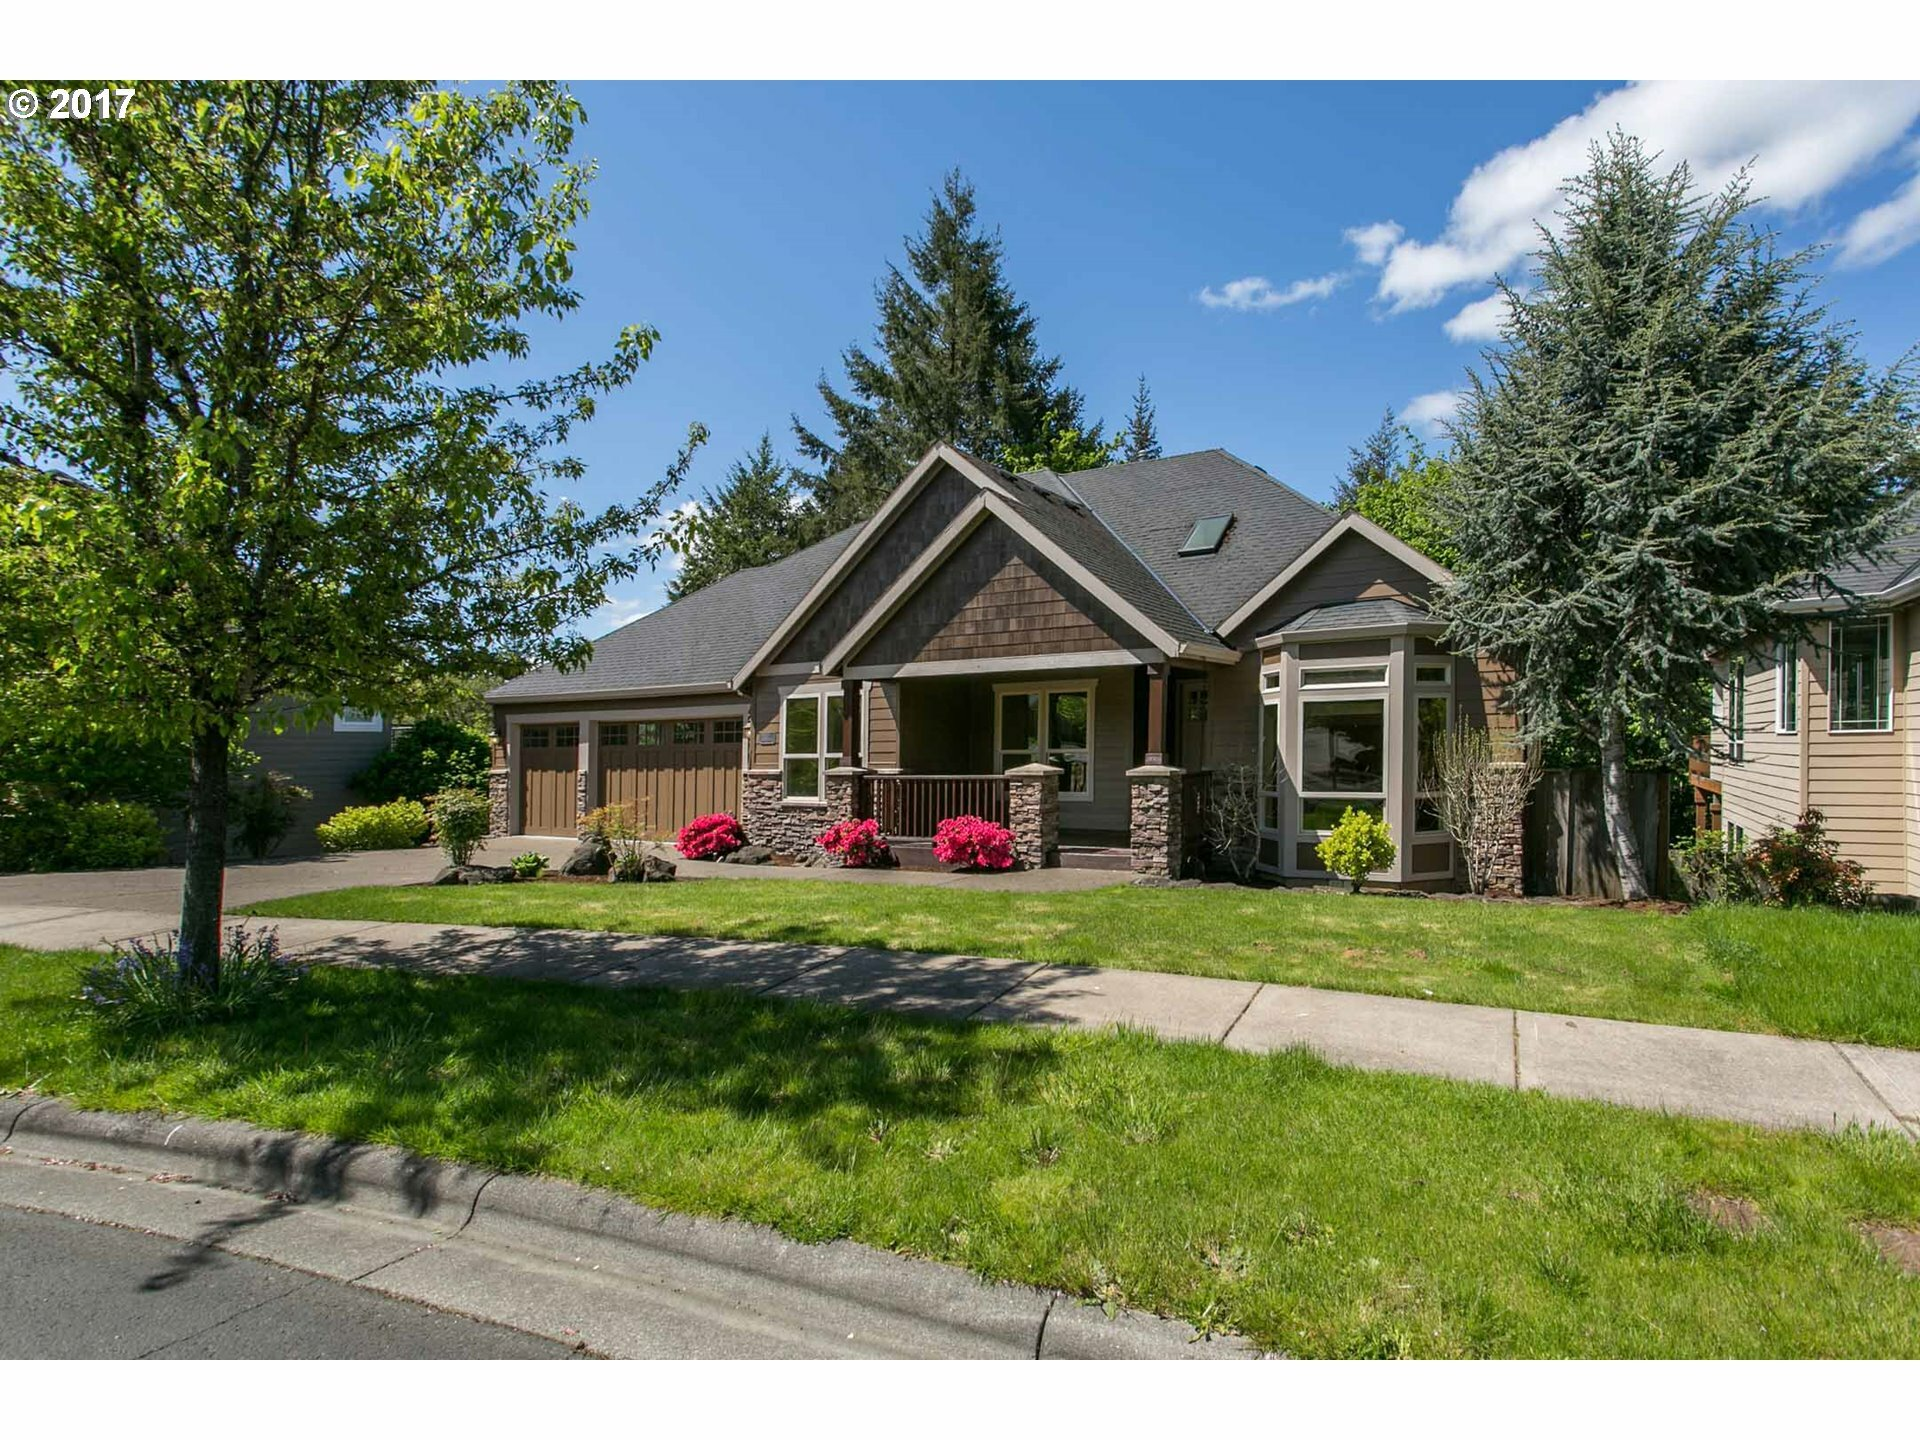 3522 Summit Pointe Ct, Forest Grove, OR - USA (photo 1)